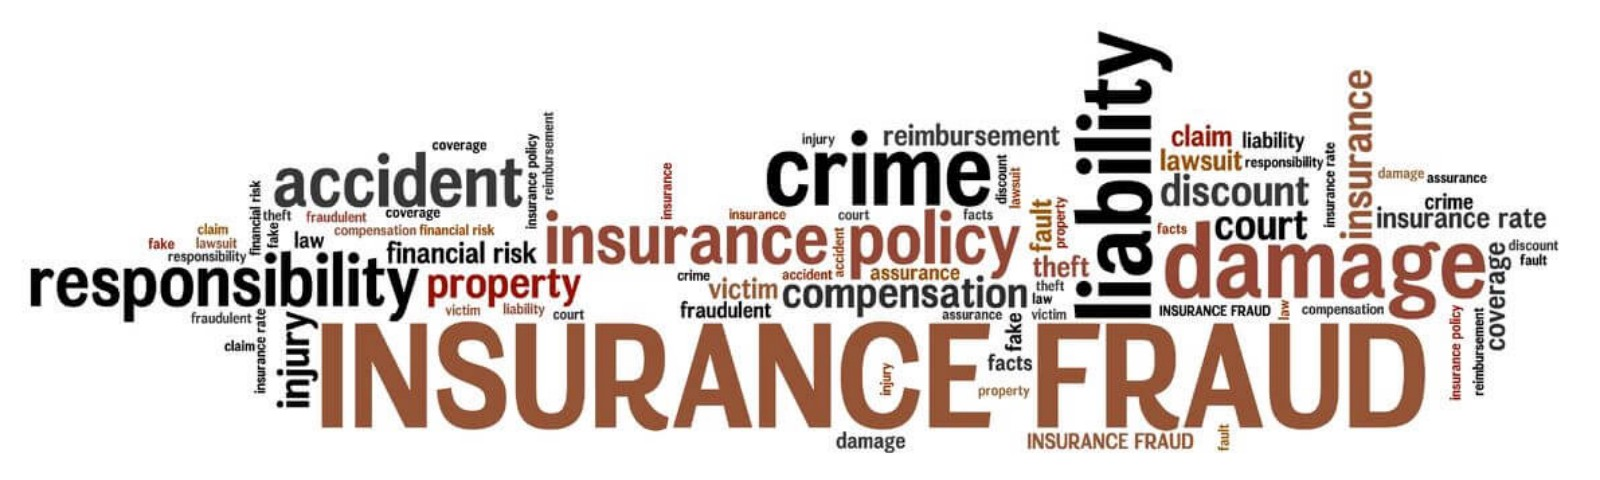 Using a Data Pipeline to Predict Insurance Claim Fraud